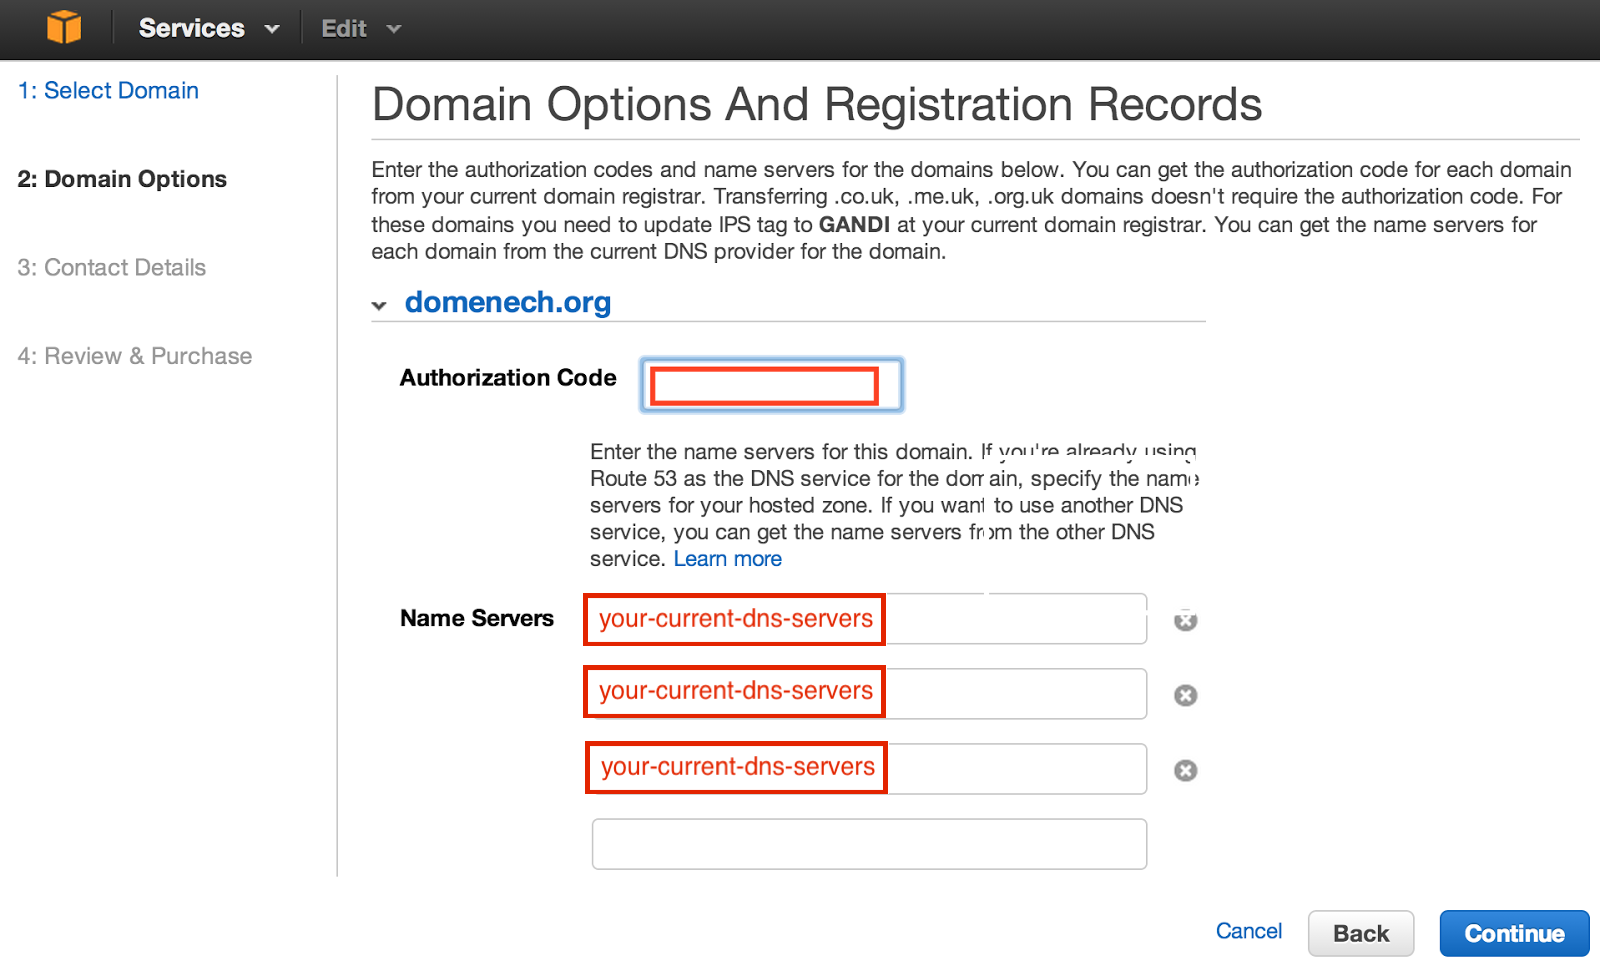 blog-domenech-org-transfer-internet-domain-to-aws-route-53-step-4